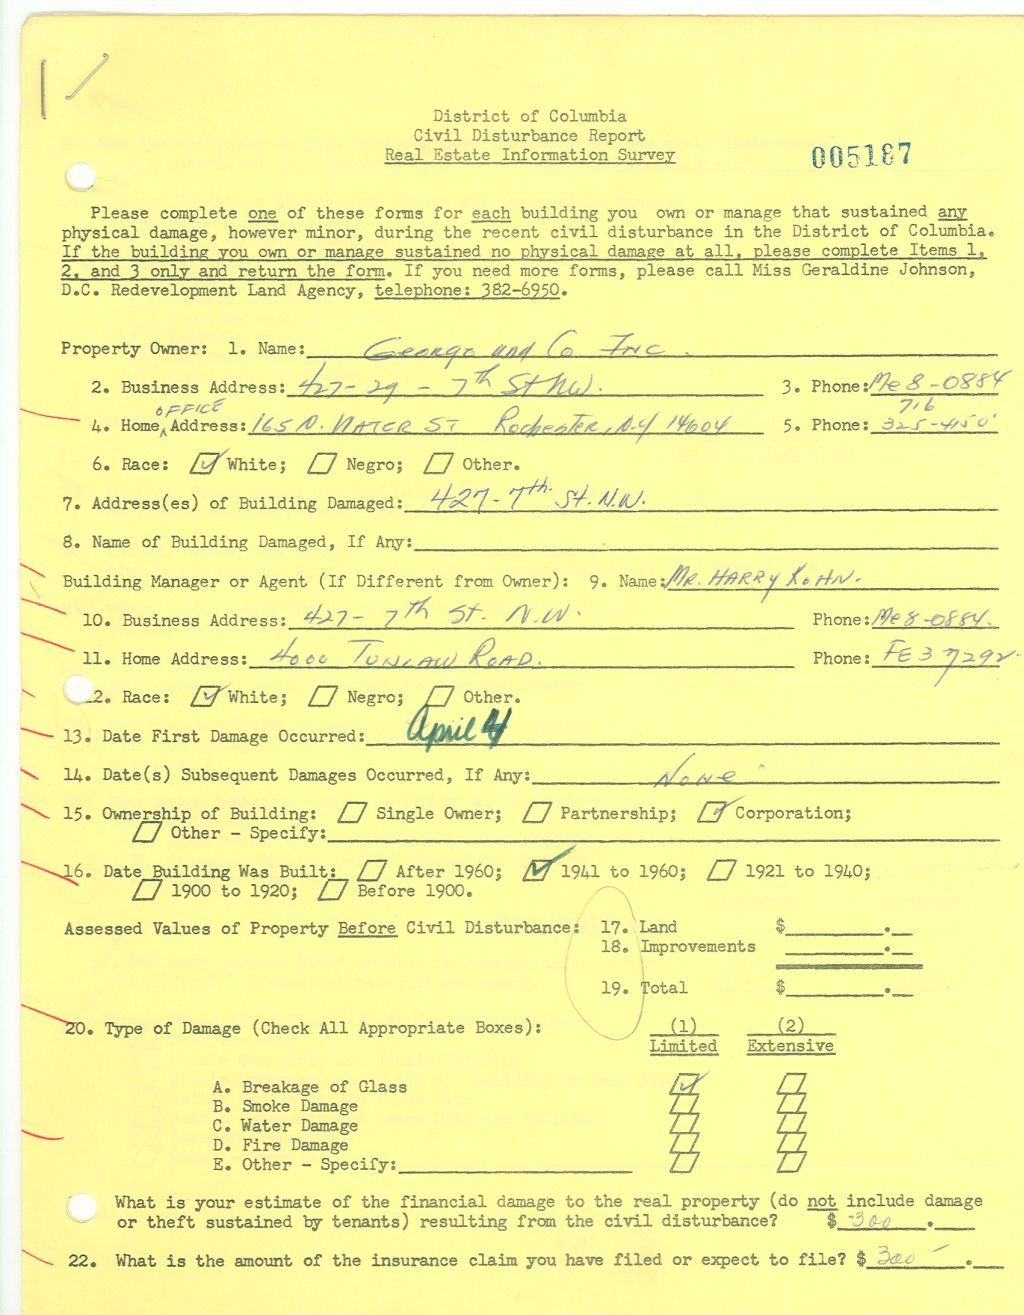 Page 1 of post-riot survey form